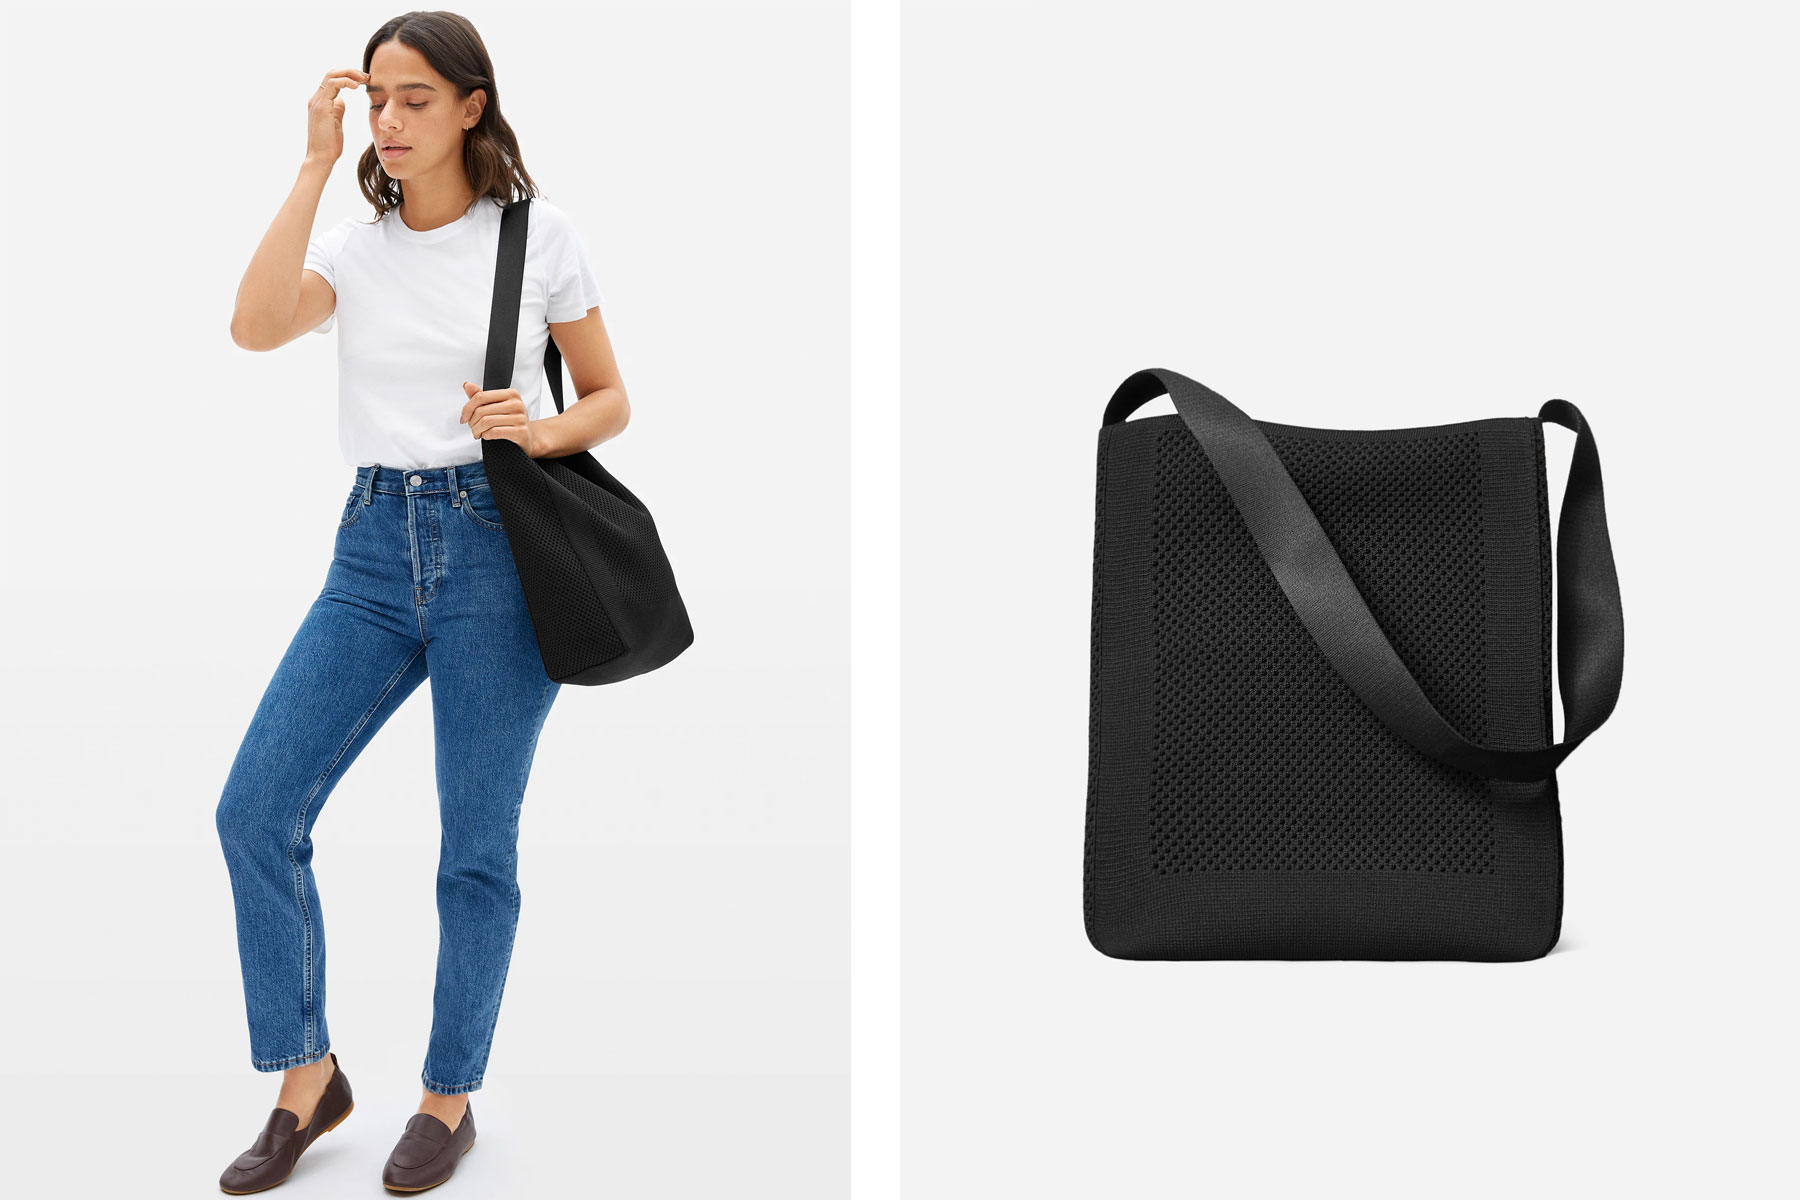 Woman carrying black knit tote bag